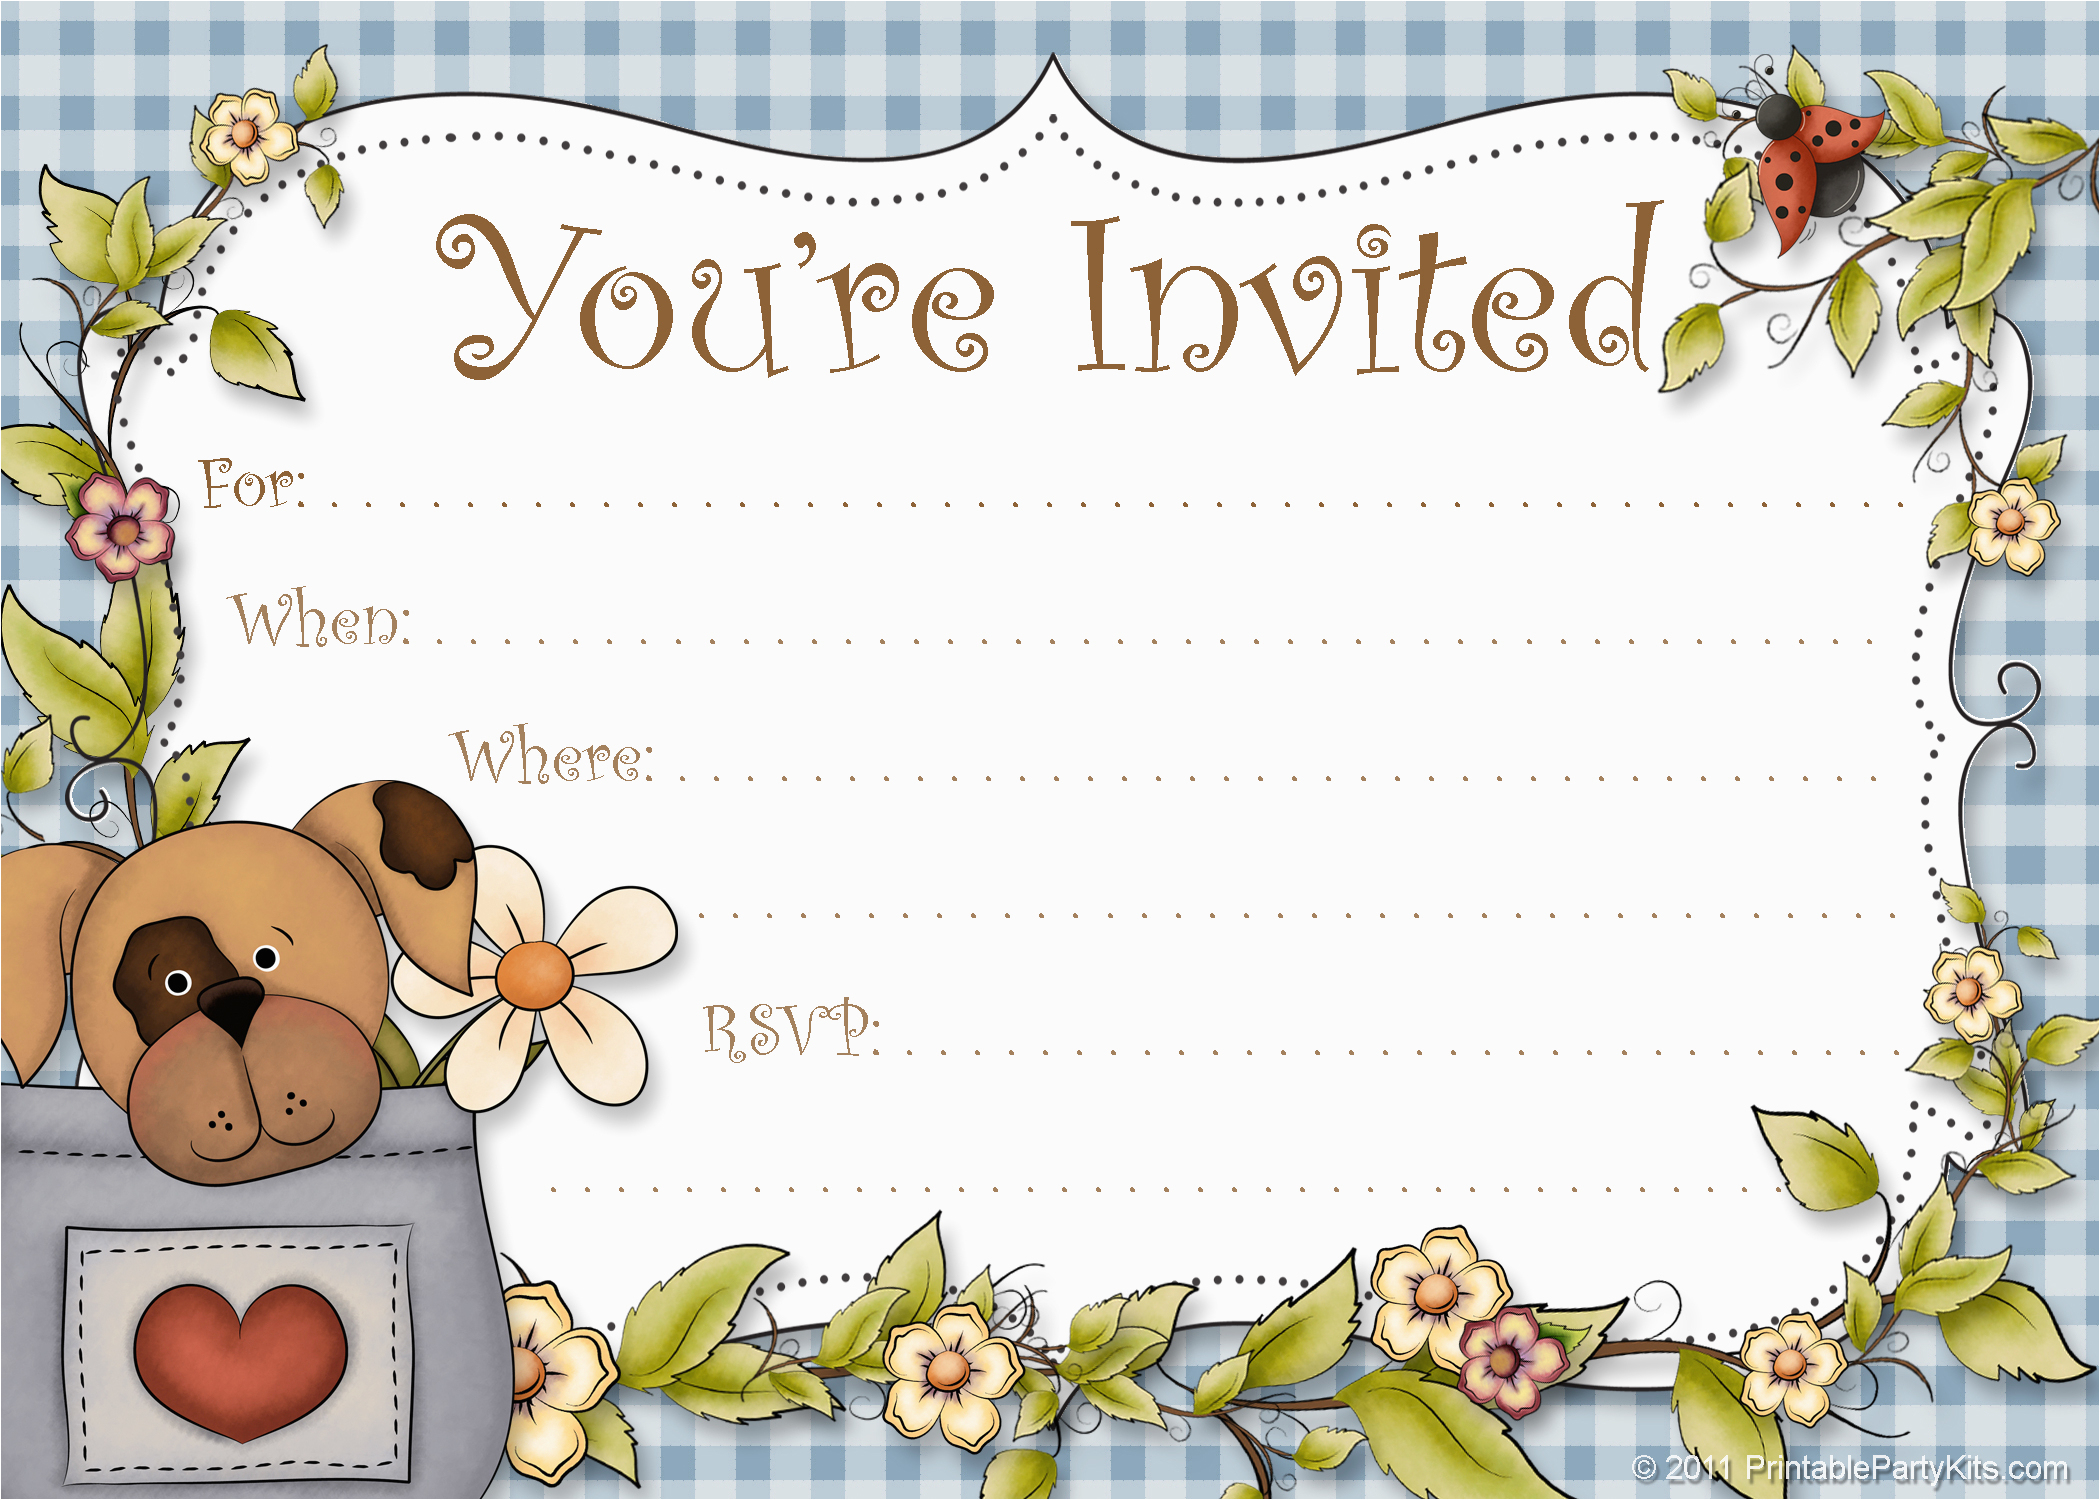 Dog Birthday Party Invitation Templates | Birthdaybuzz - Dog Birthday Invitations Free Printable